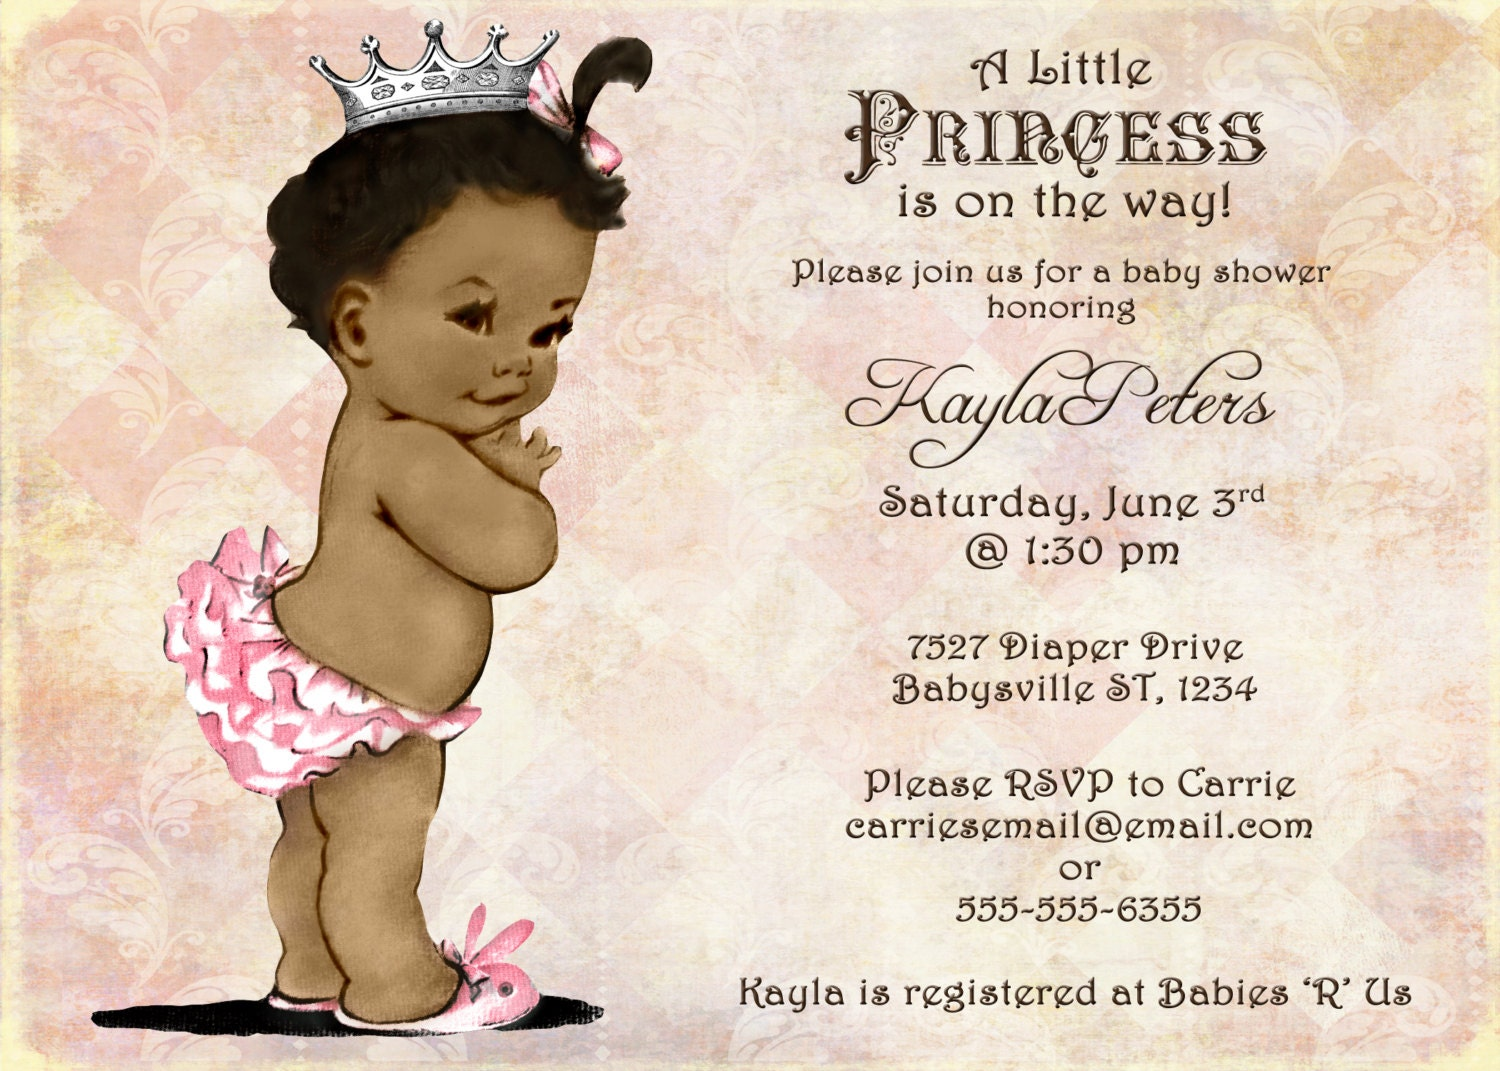 African American Baby Shower Invitation For Girl by jjMcBean